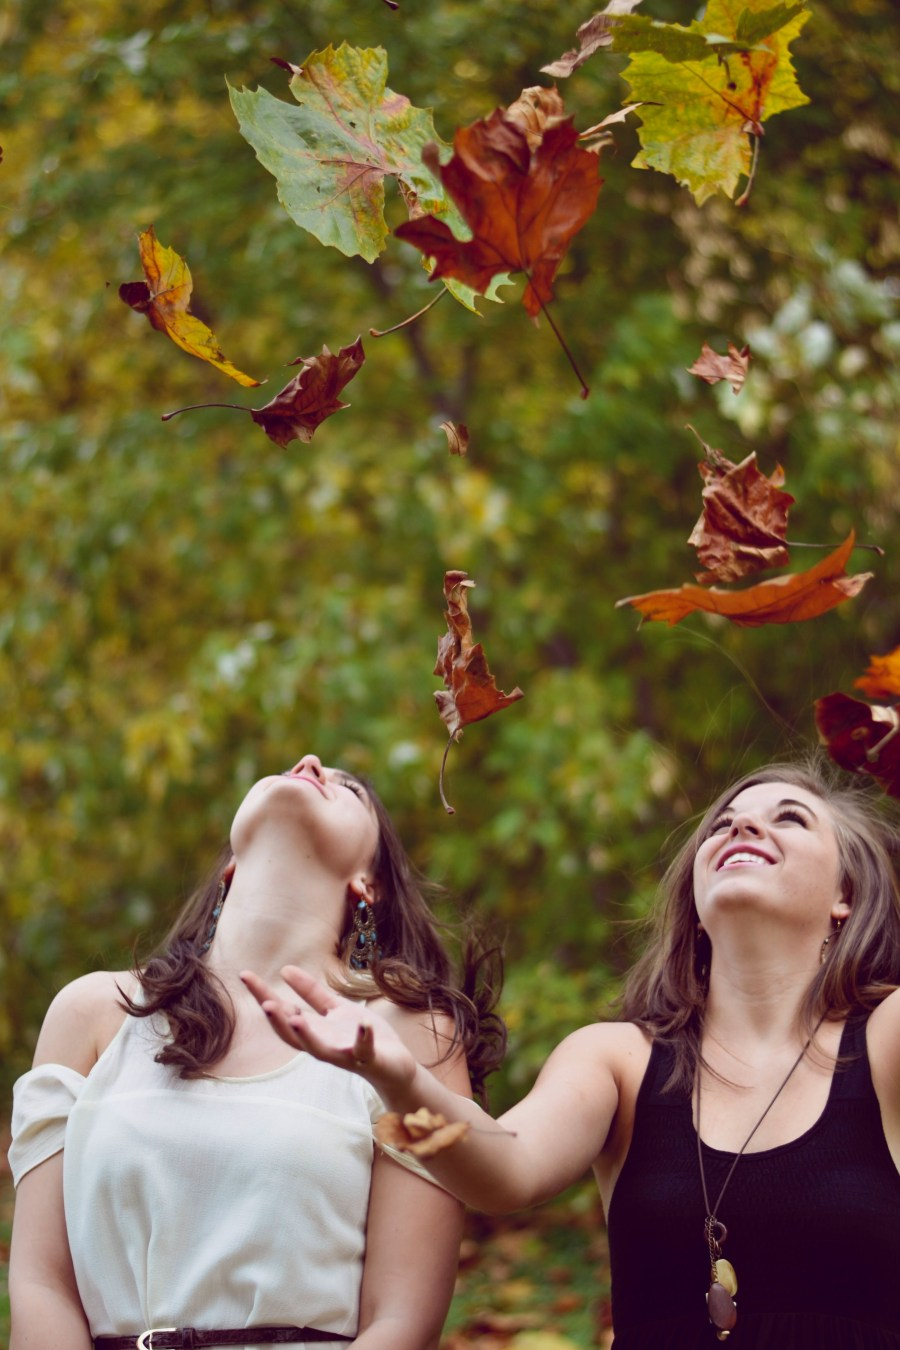 Two young women throwing autumn leaves in the air